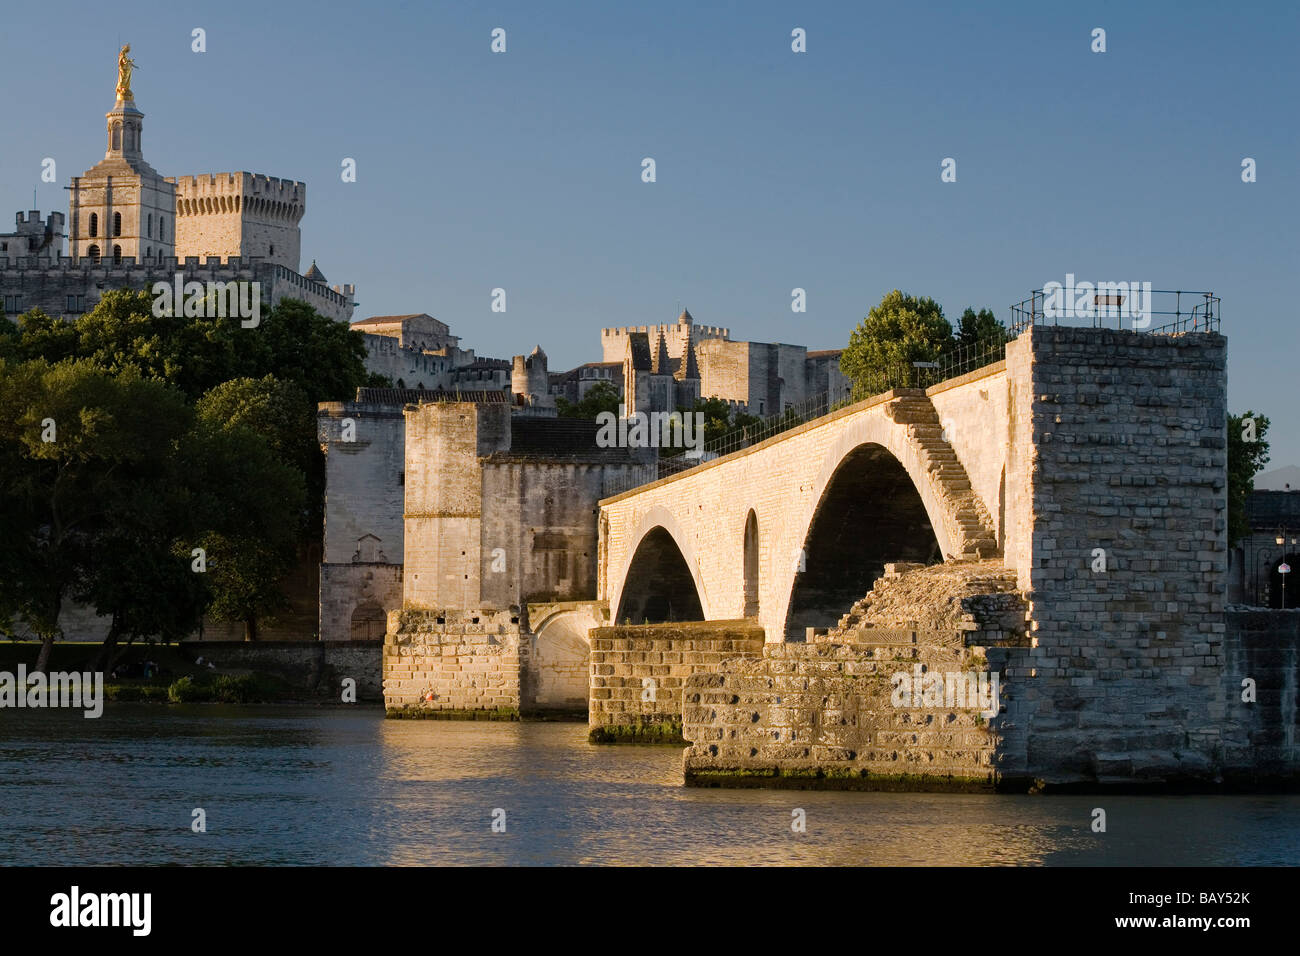 View at the bridge St. Benezet, the Palace of the Popes in the background, Avignon, Vaucluse, Provence, France - Stock Image